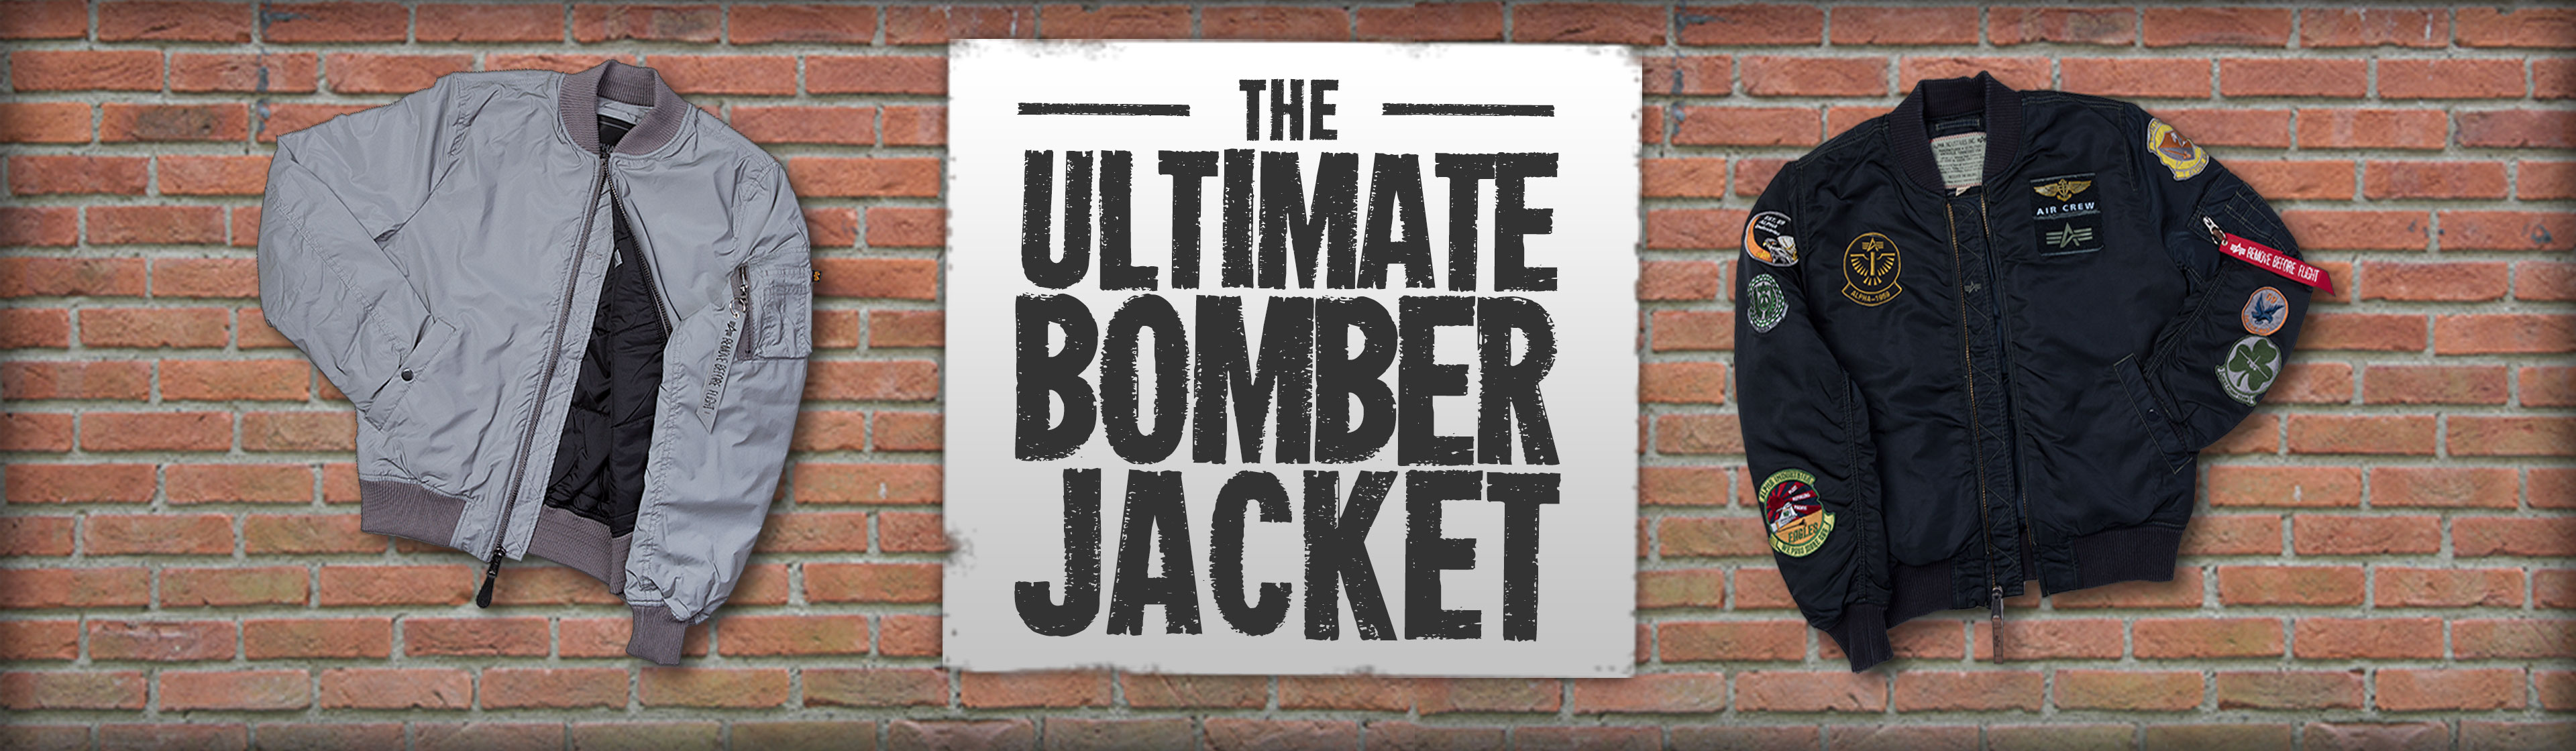 Flying High: The History of the MA-1 Bomber Jacket